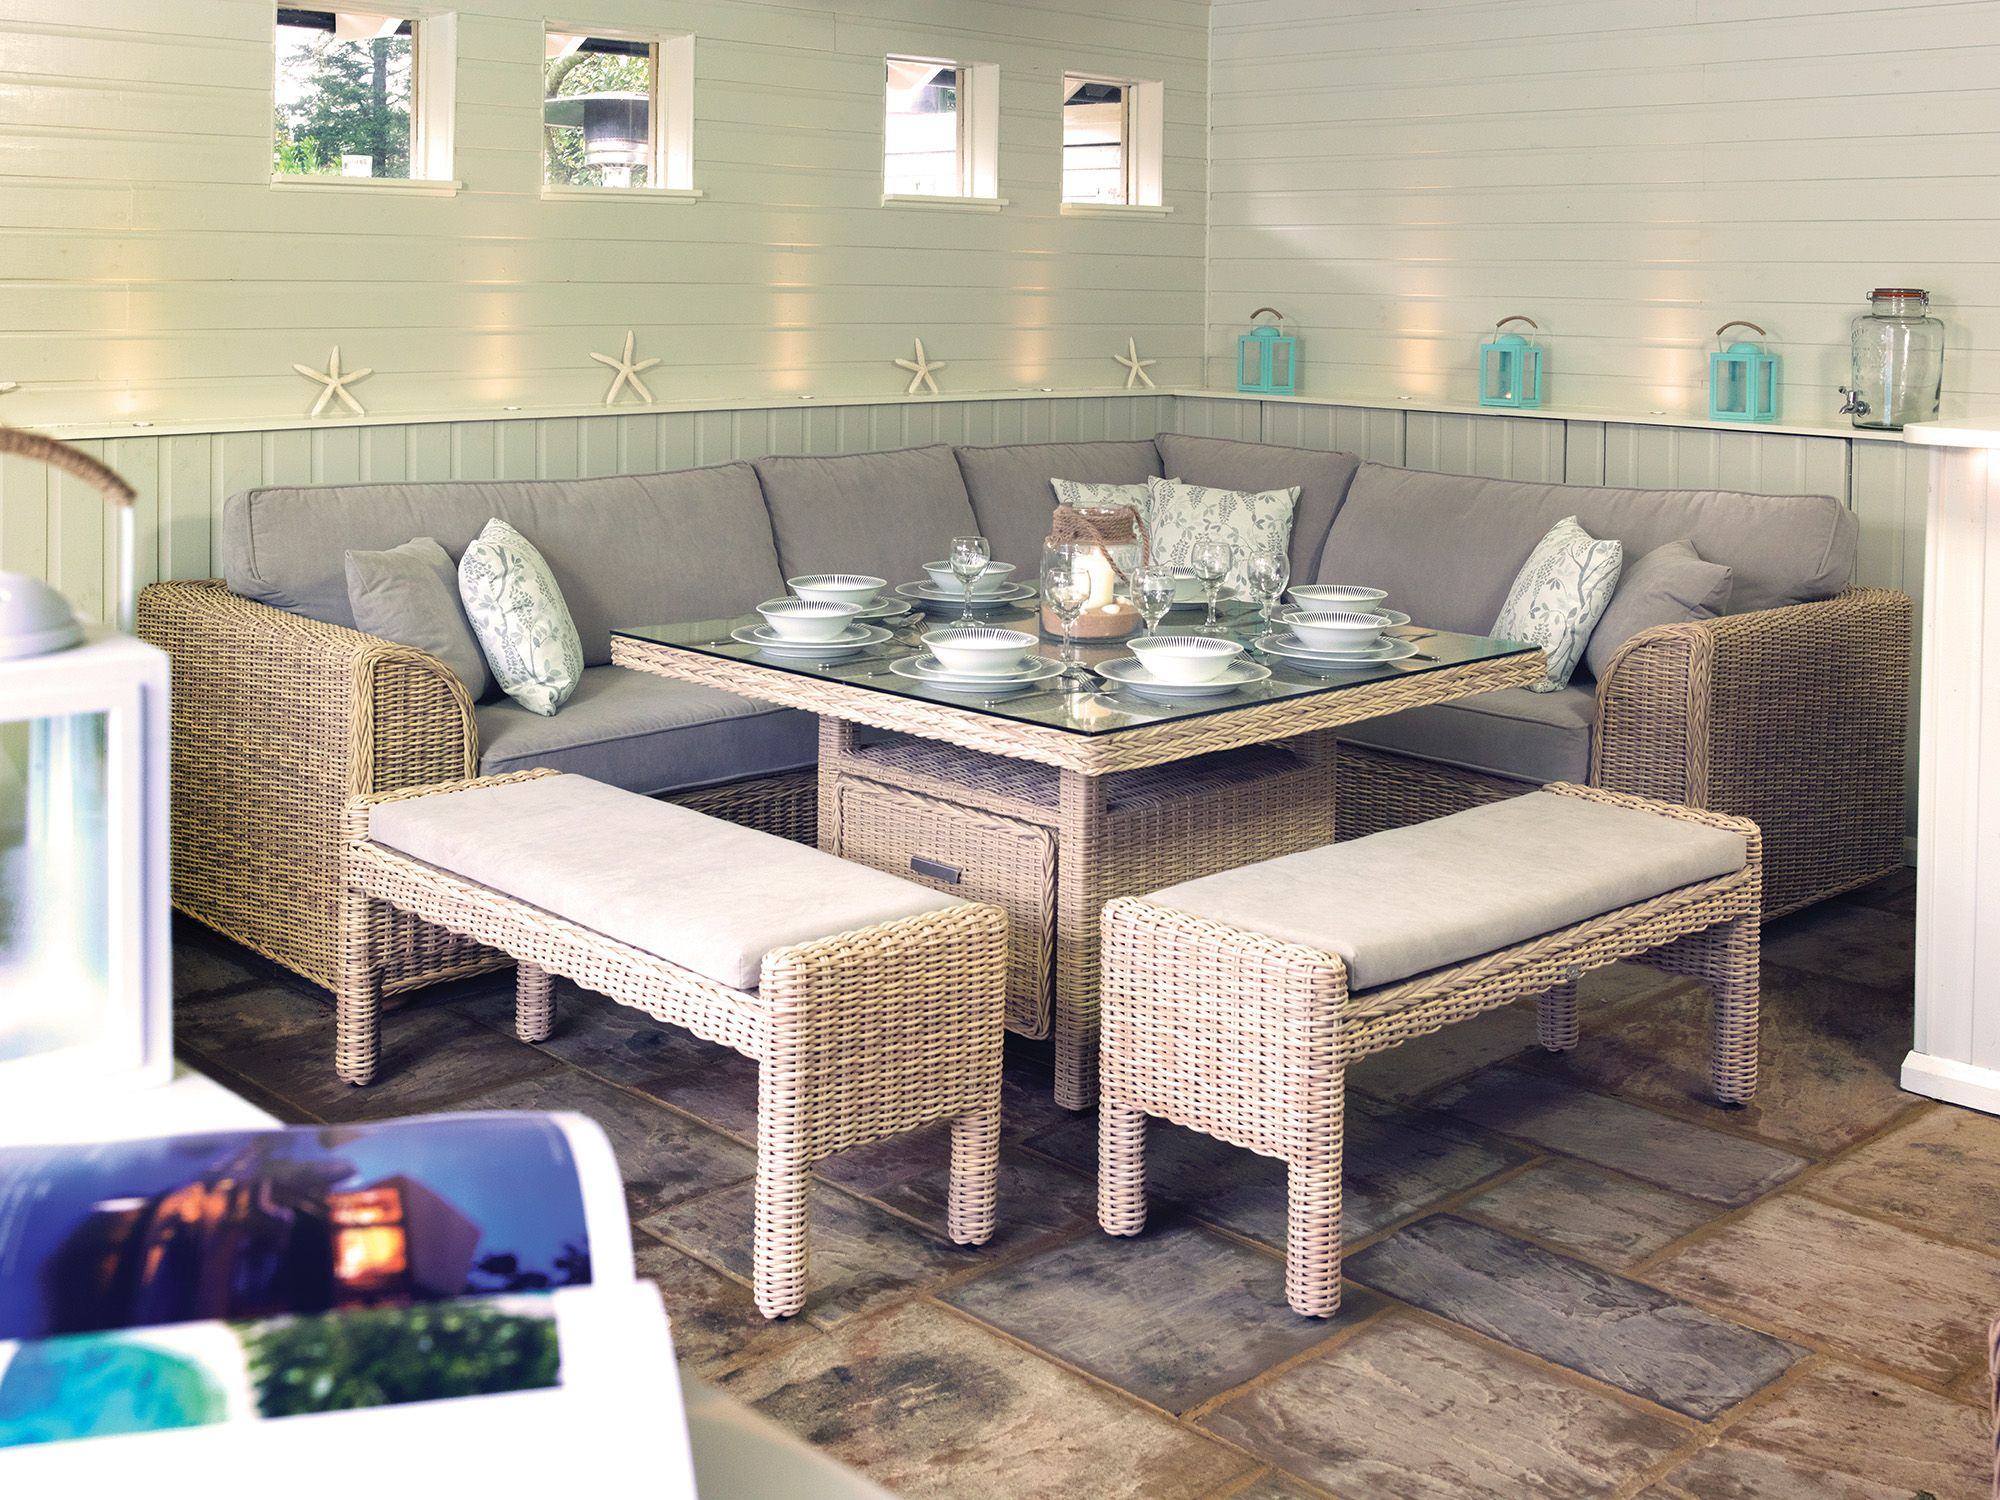 Hamilton Dining In Lucca Pebble Fabric http://bit.ly/hamiltonmodular